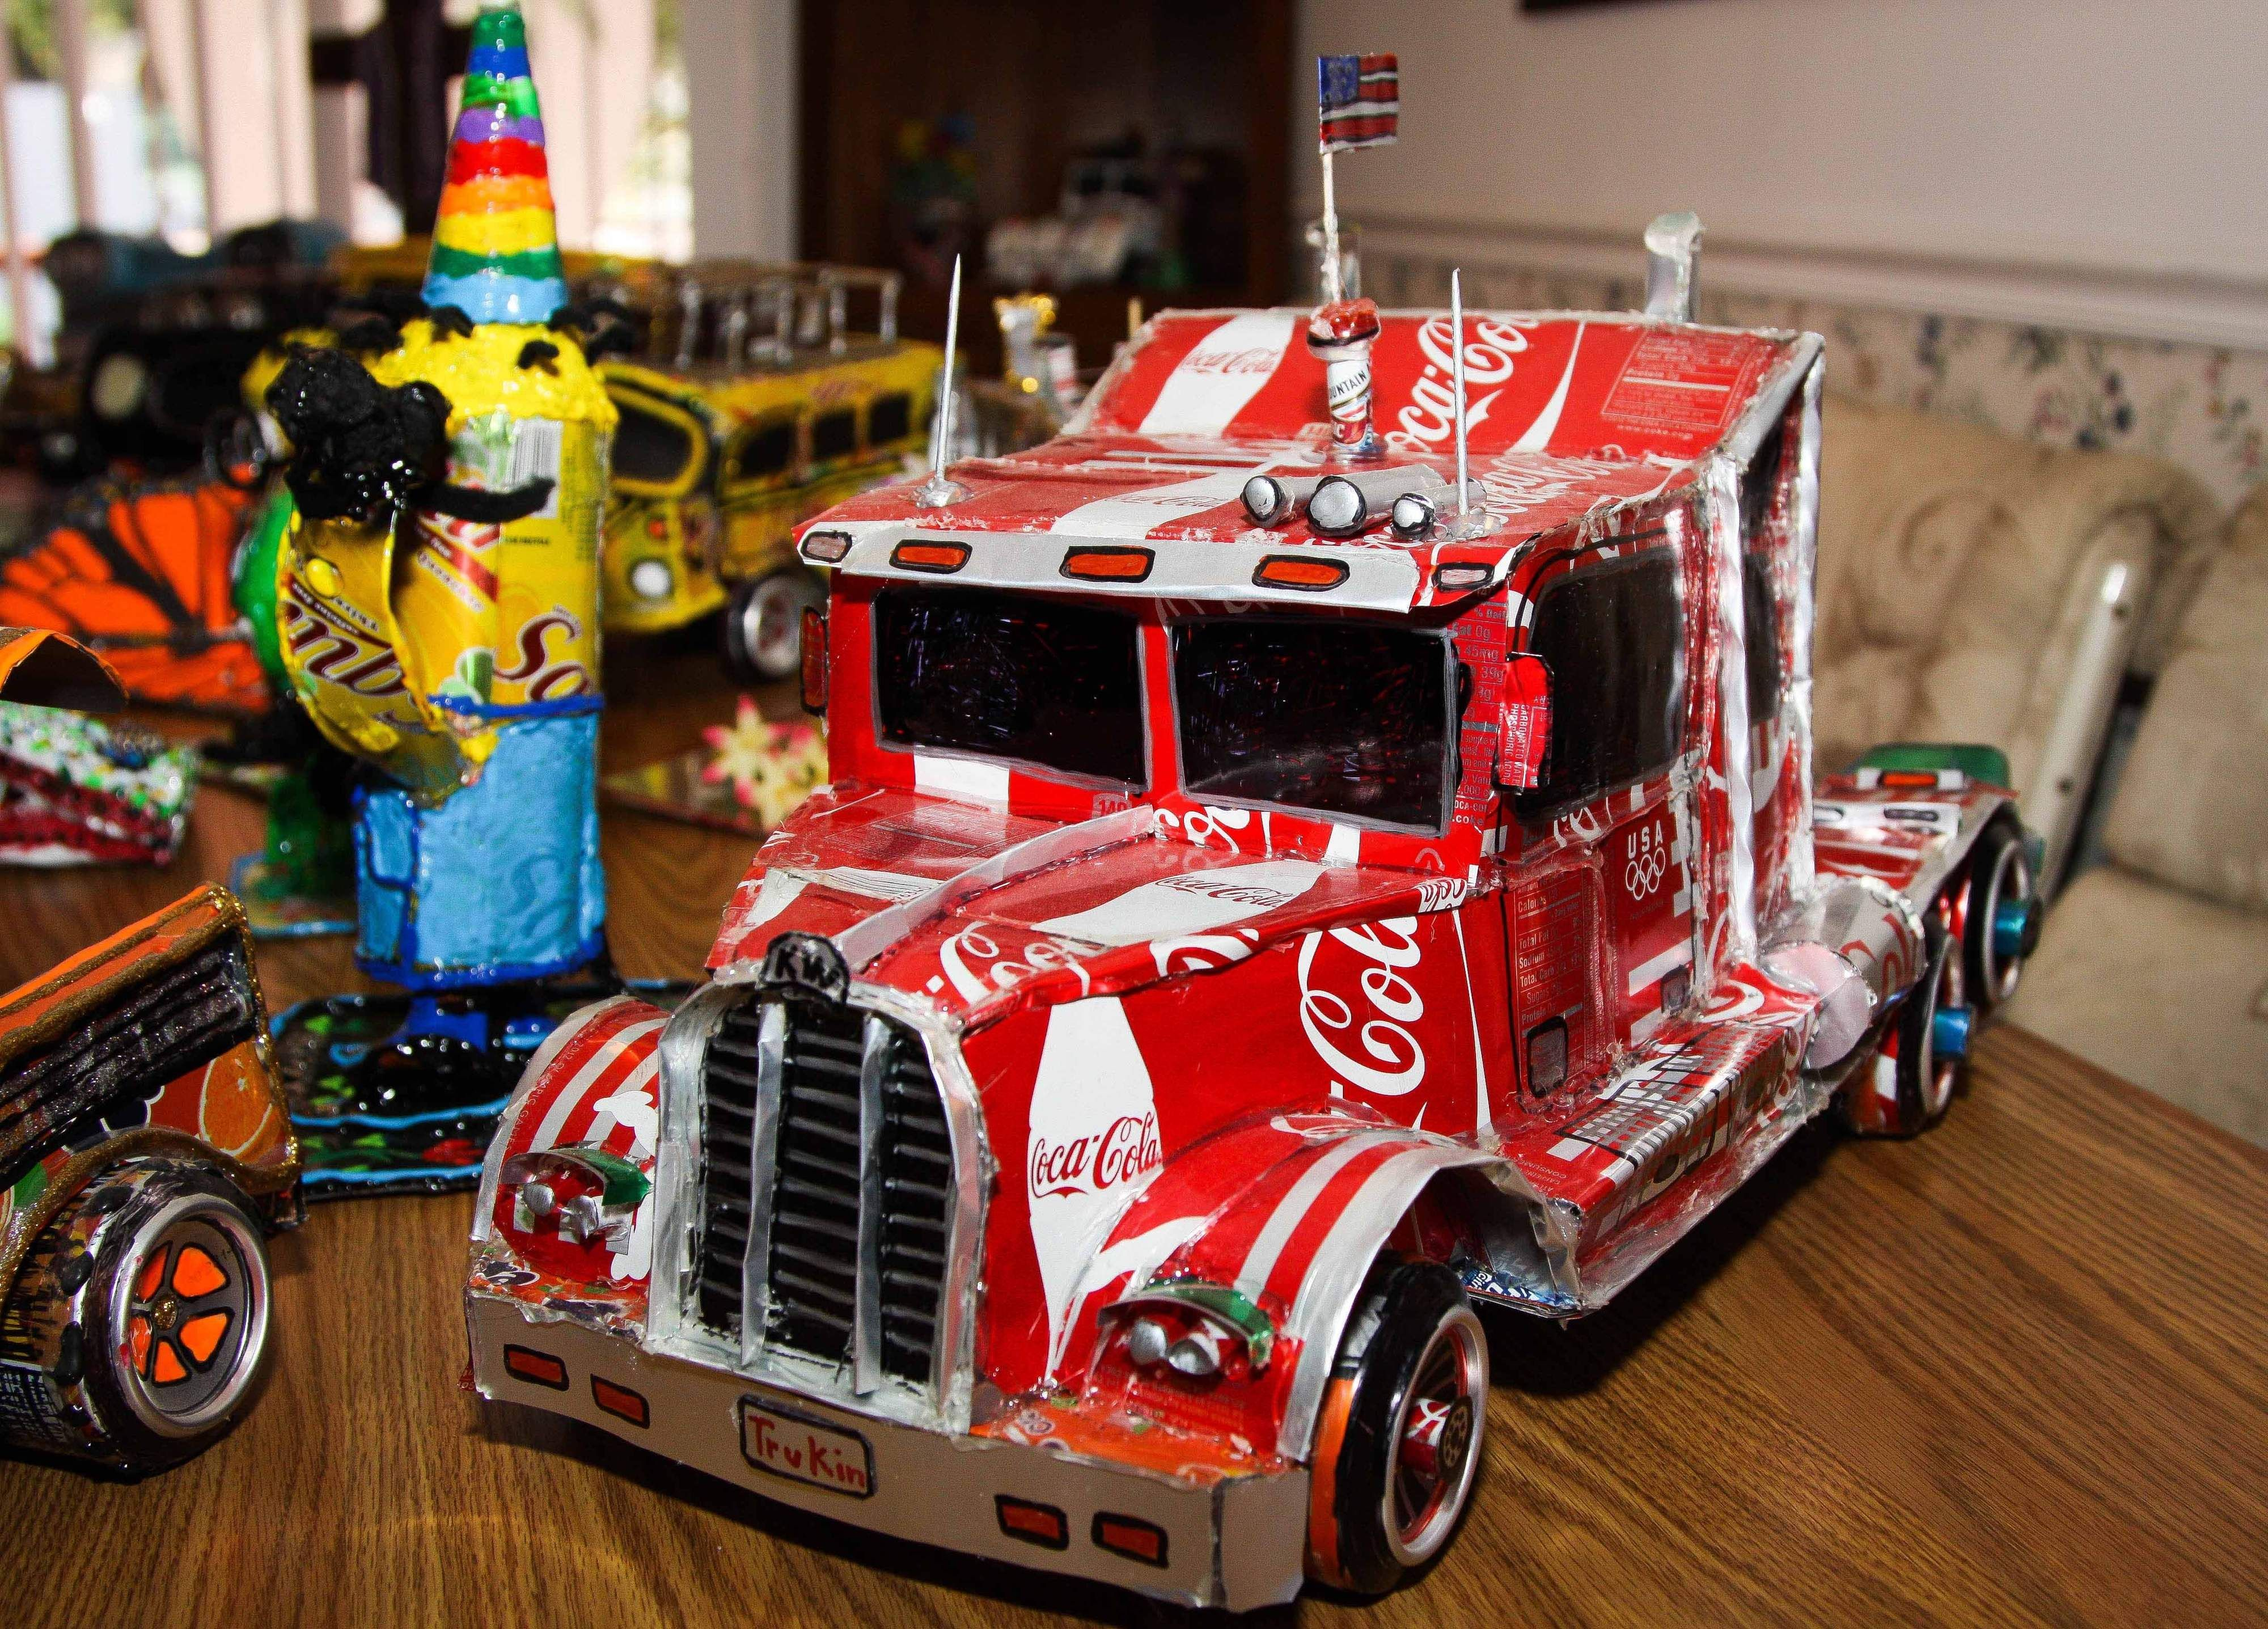 Steven Spittka Made This Truck From Soda Cans He Has Hundreds 10 Bekas Of Items Over The Past Three Years